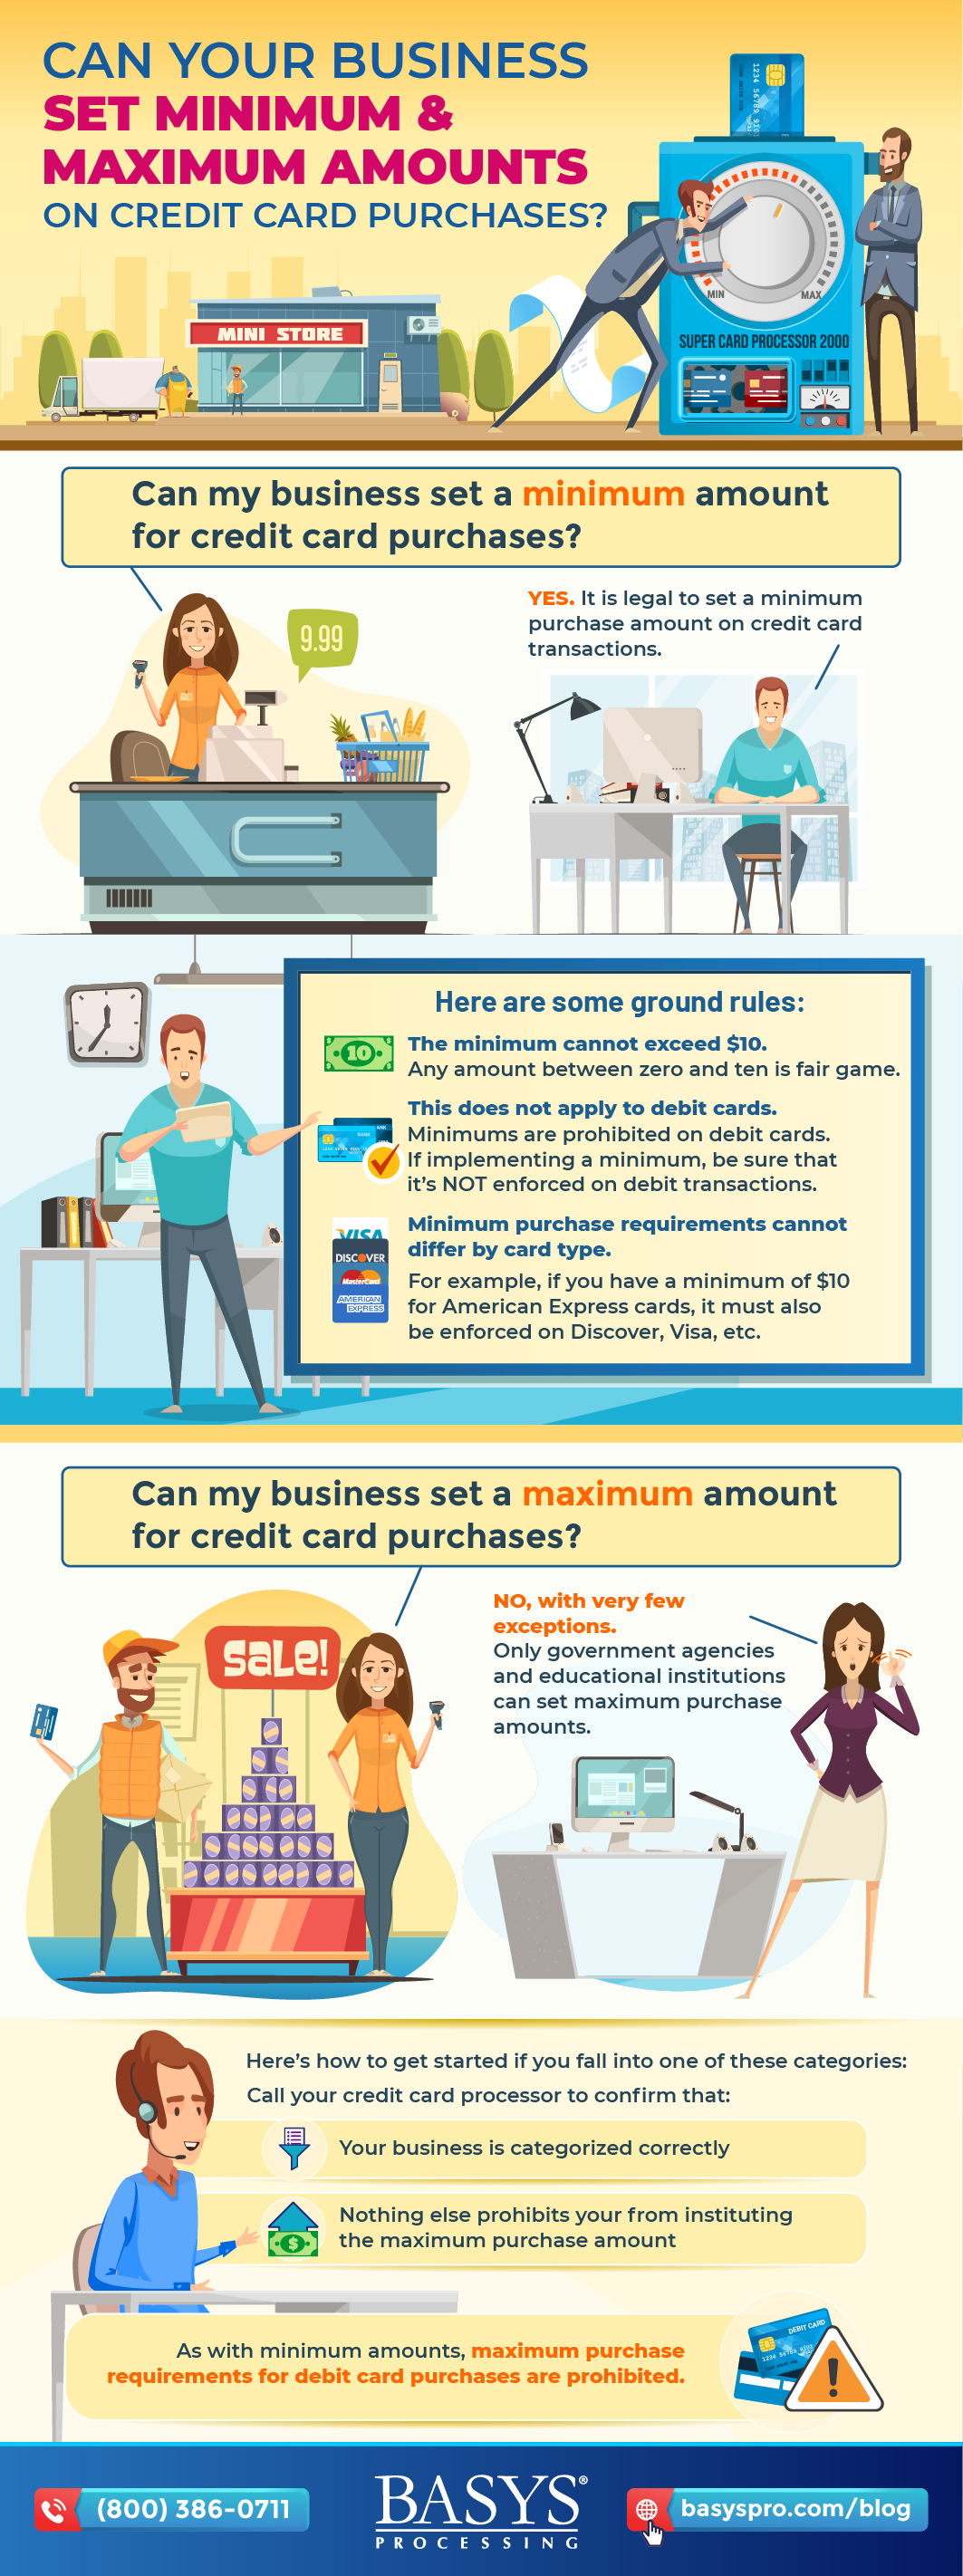 Can Your Business Set Minimum & Maximum Amounts on Credit Card Purchases?